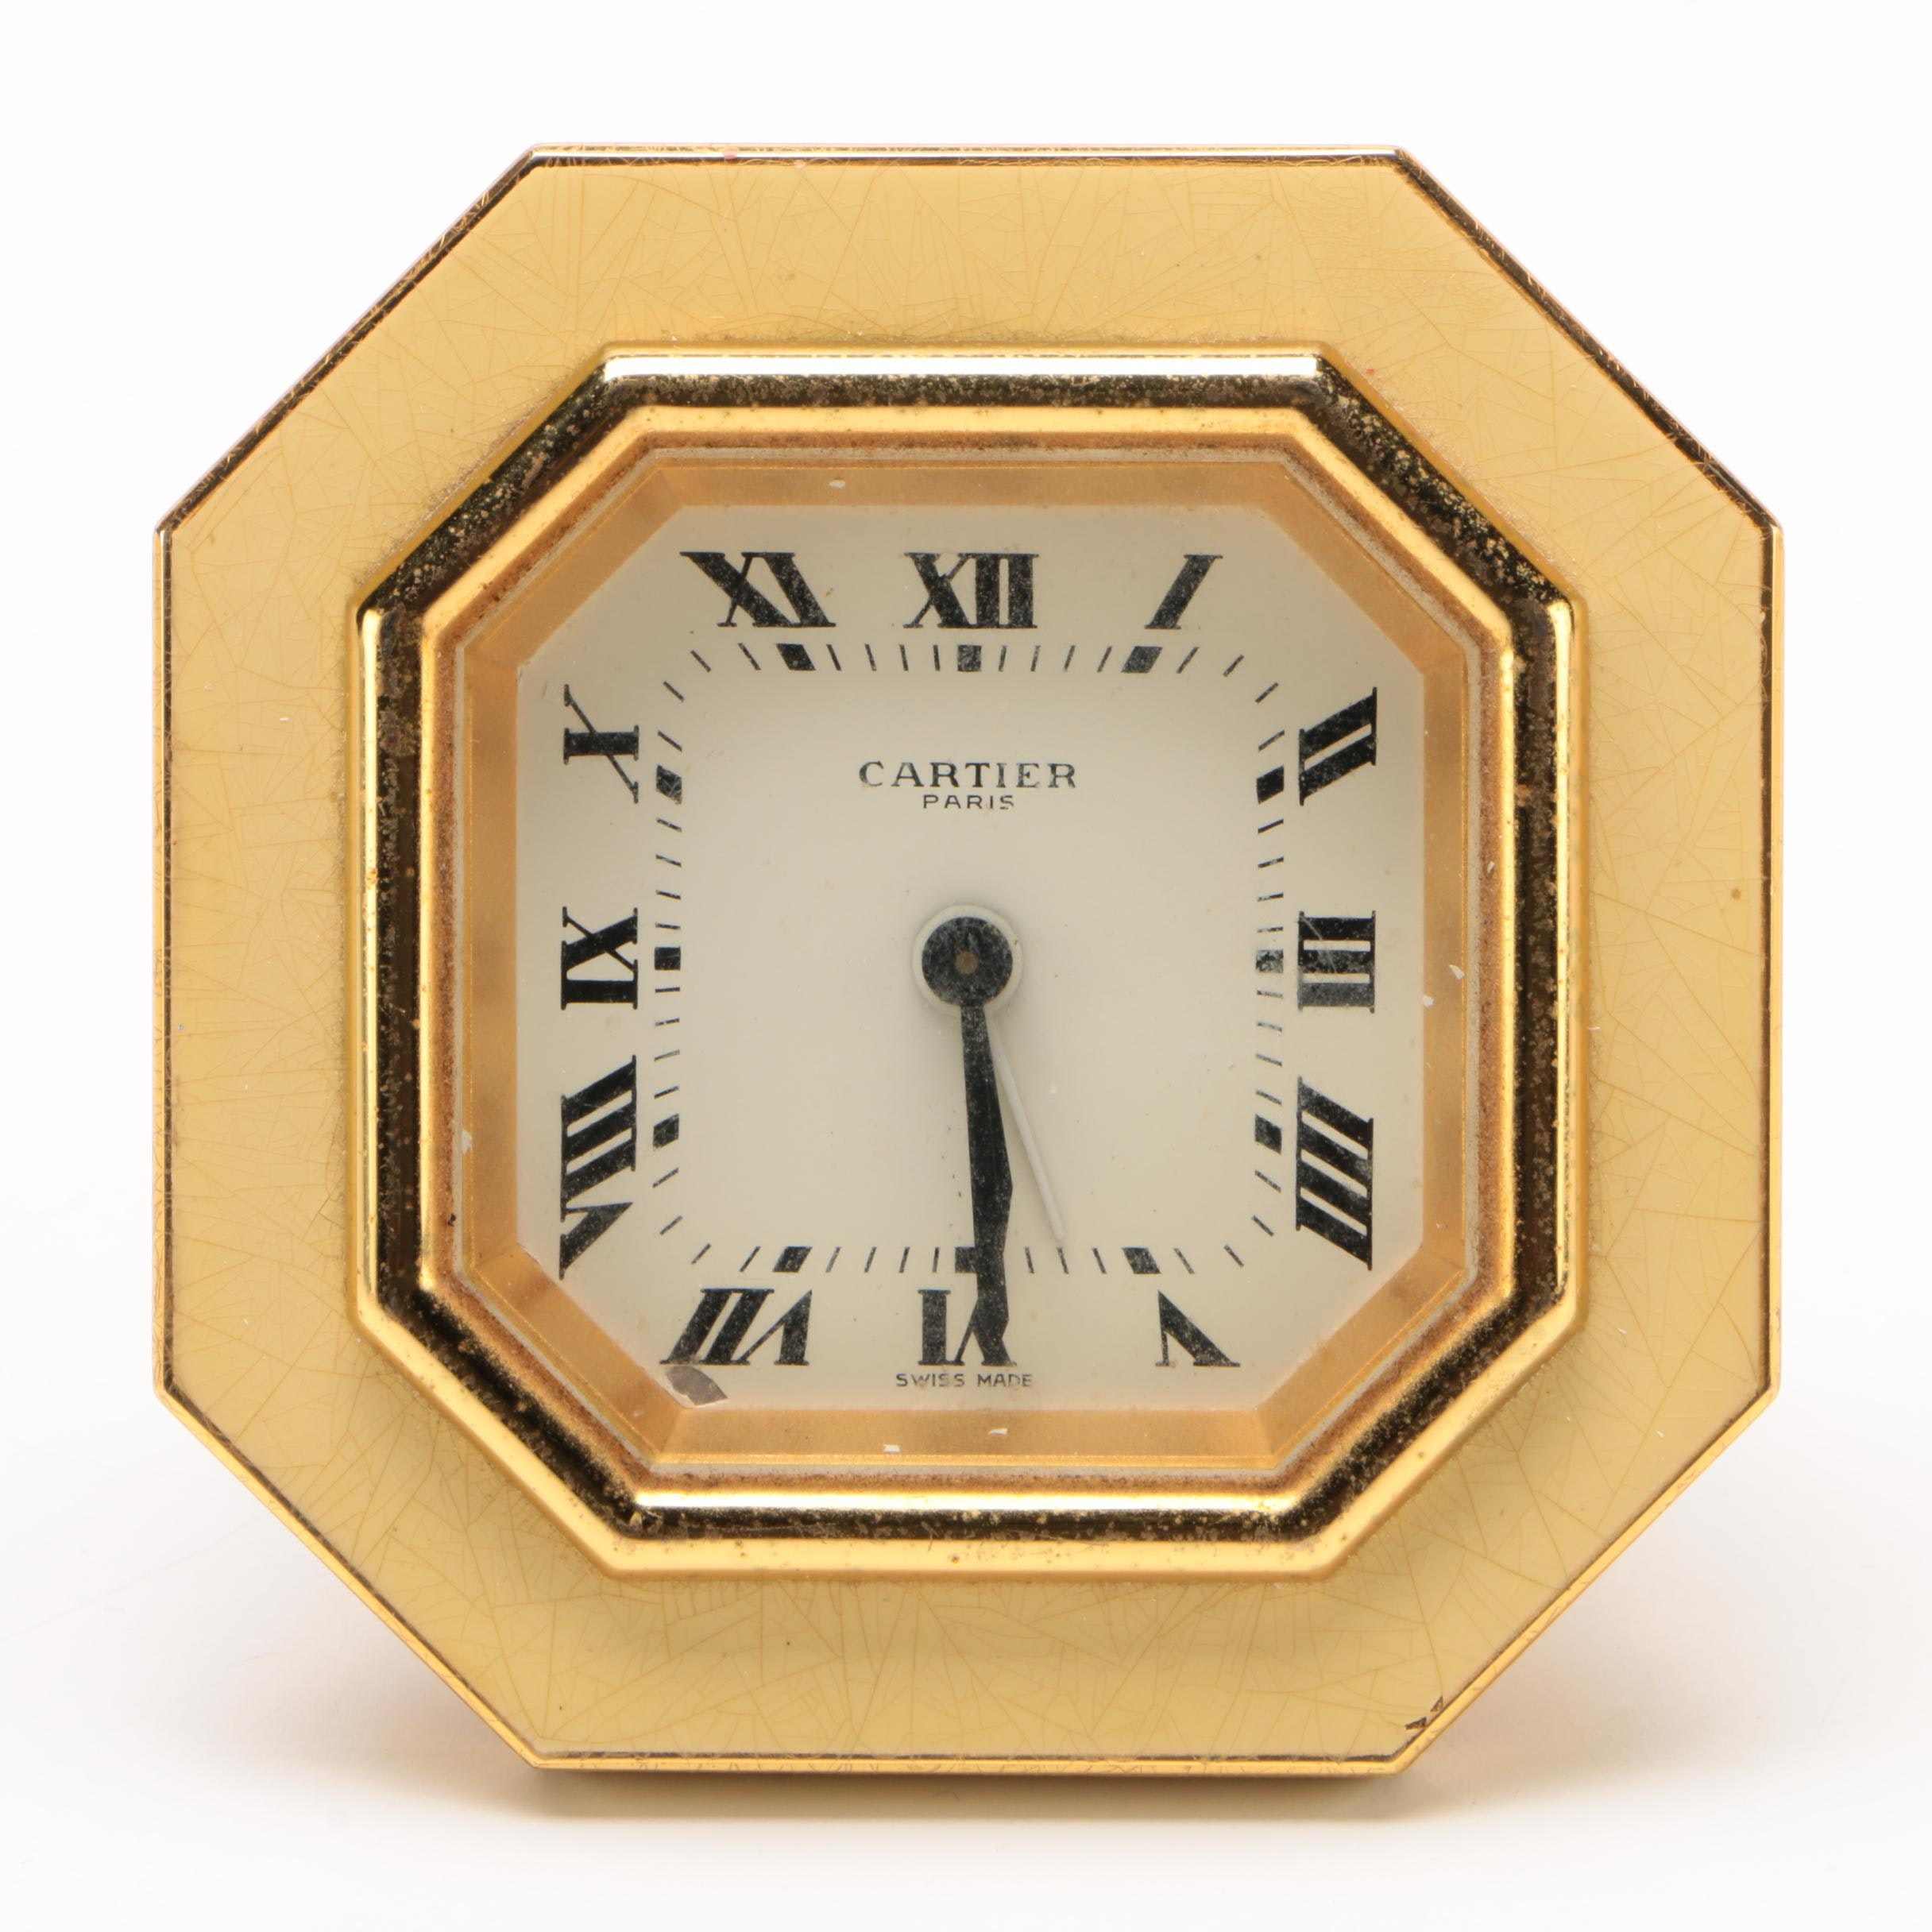 Cartier Gilt Metal Octagonal Desk Clock with Enamel Frame